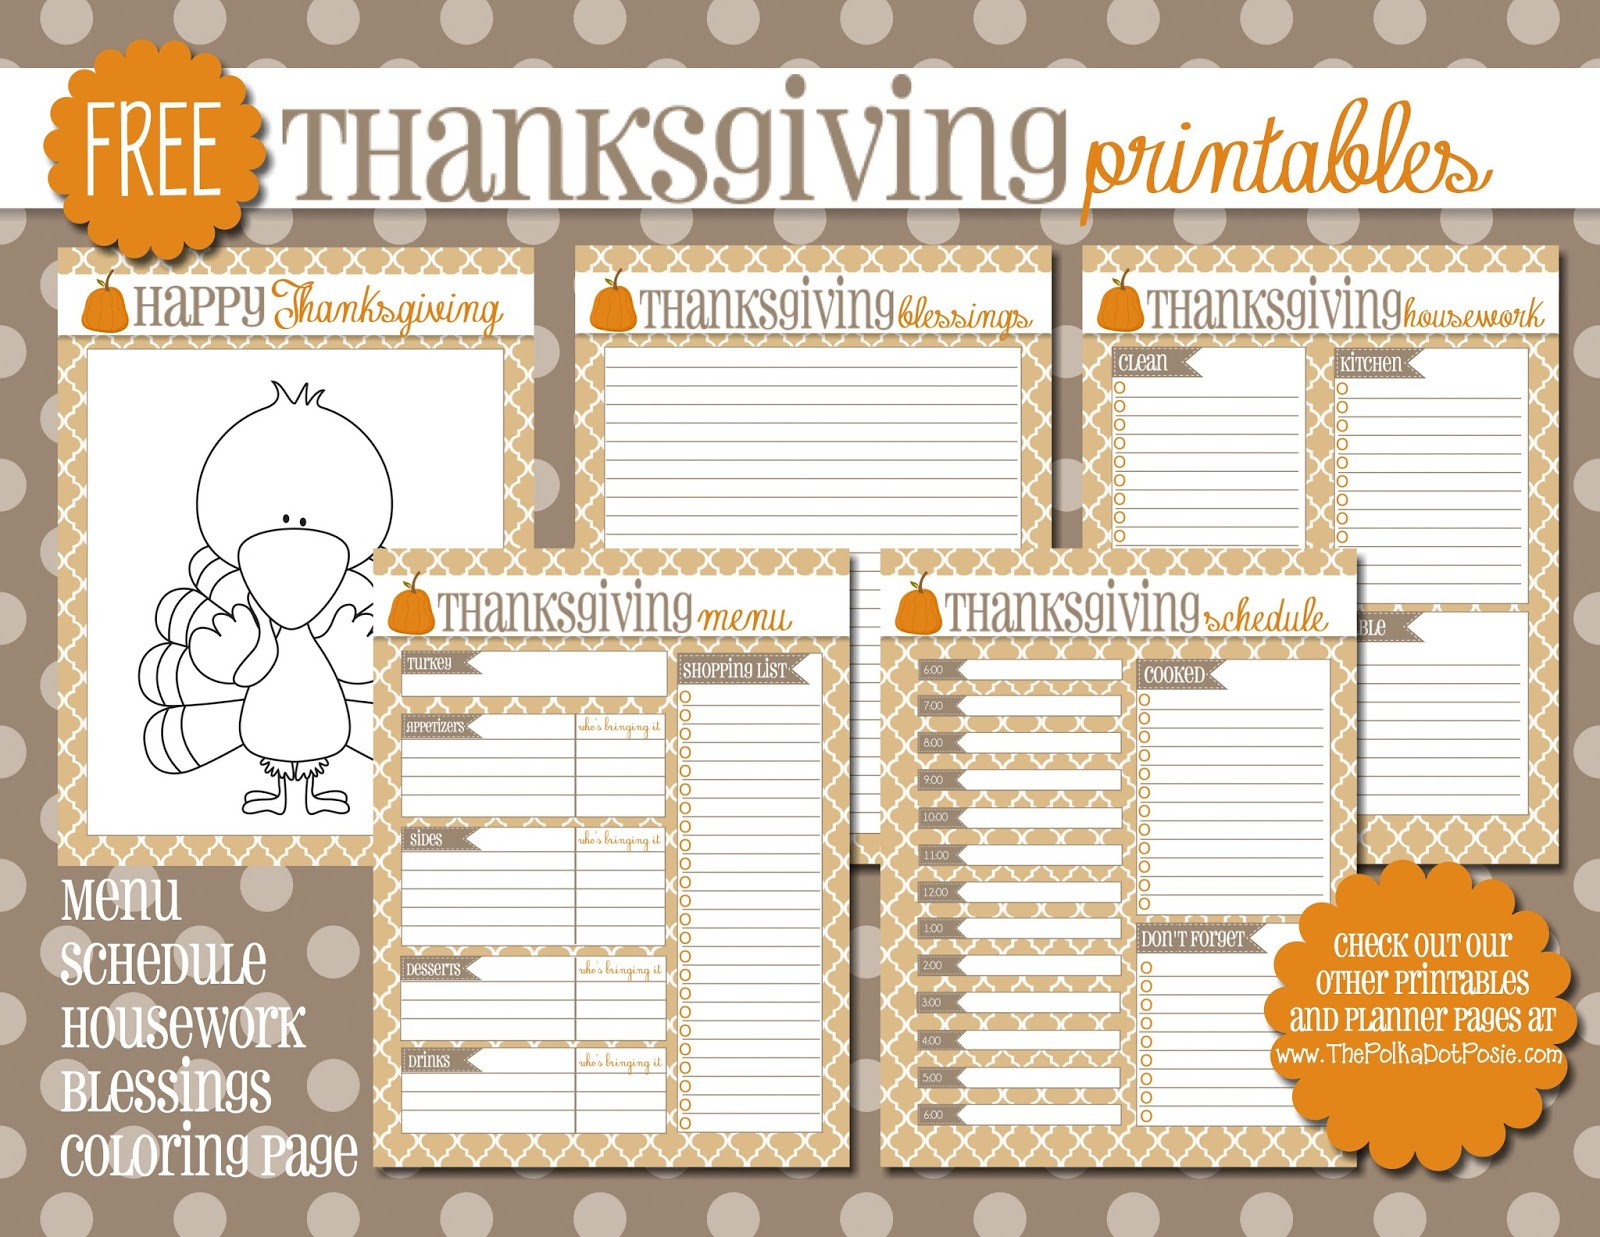 image relating to Thanksgiving Menu Planner Printable referred to as The Polka Dot Posie: Cost-free Thanksgiving Printables for your